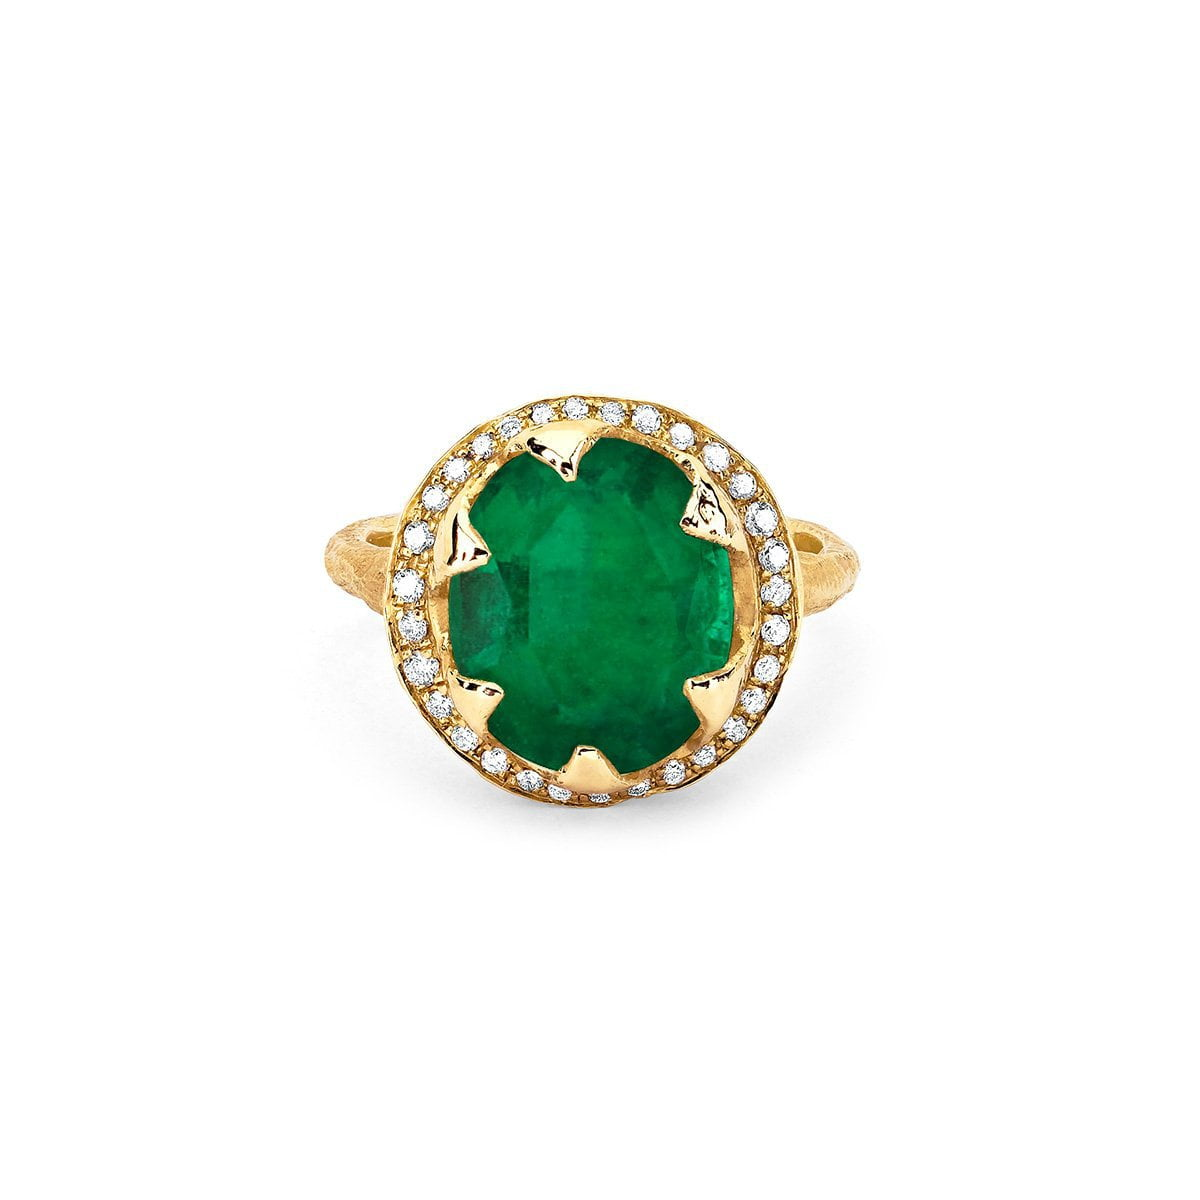 18k Queen Oval Colombian Emerald Ring with Full Pavé Diamond Halo